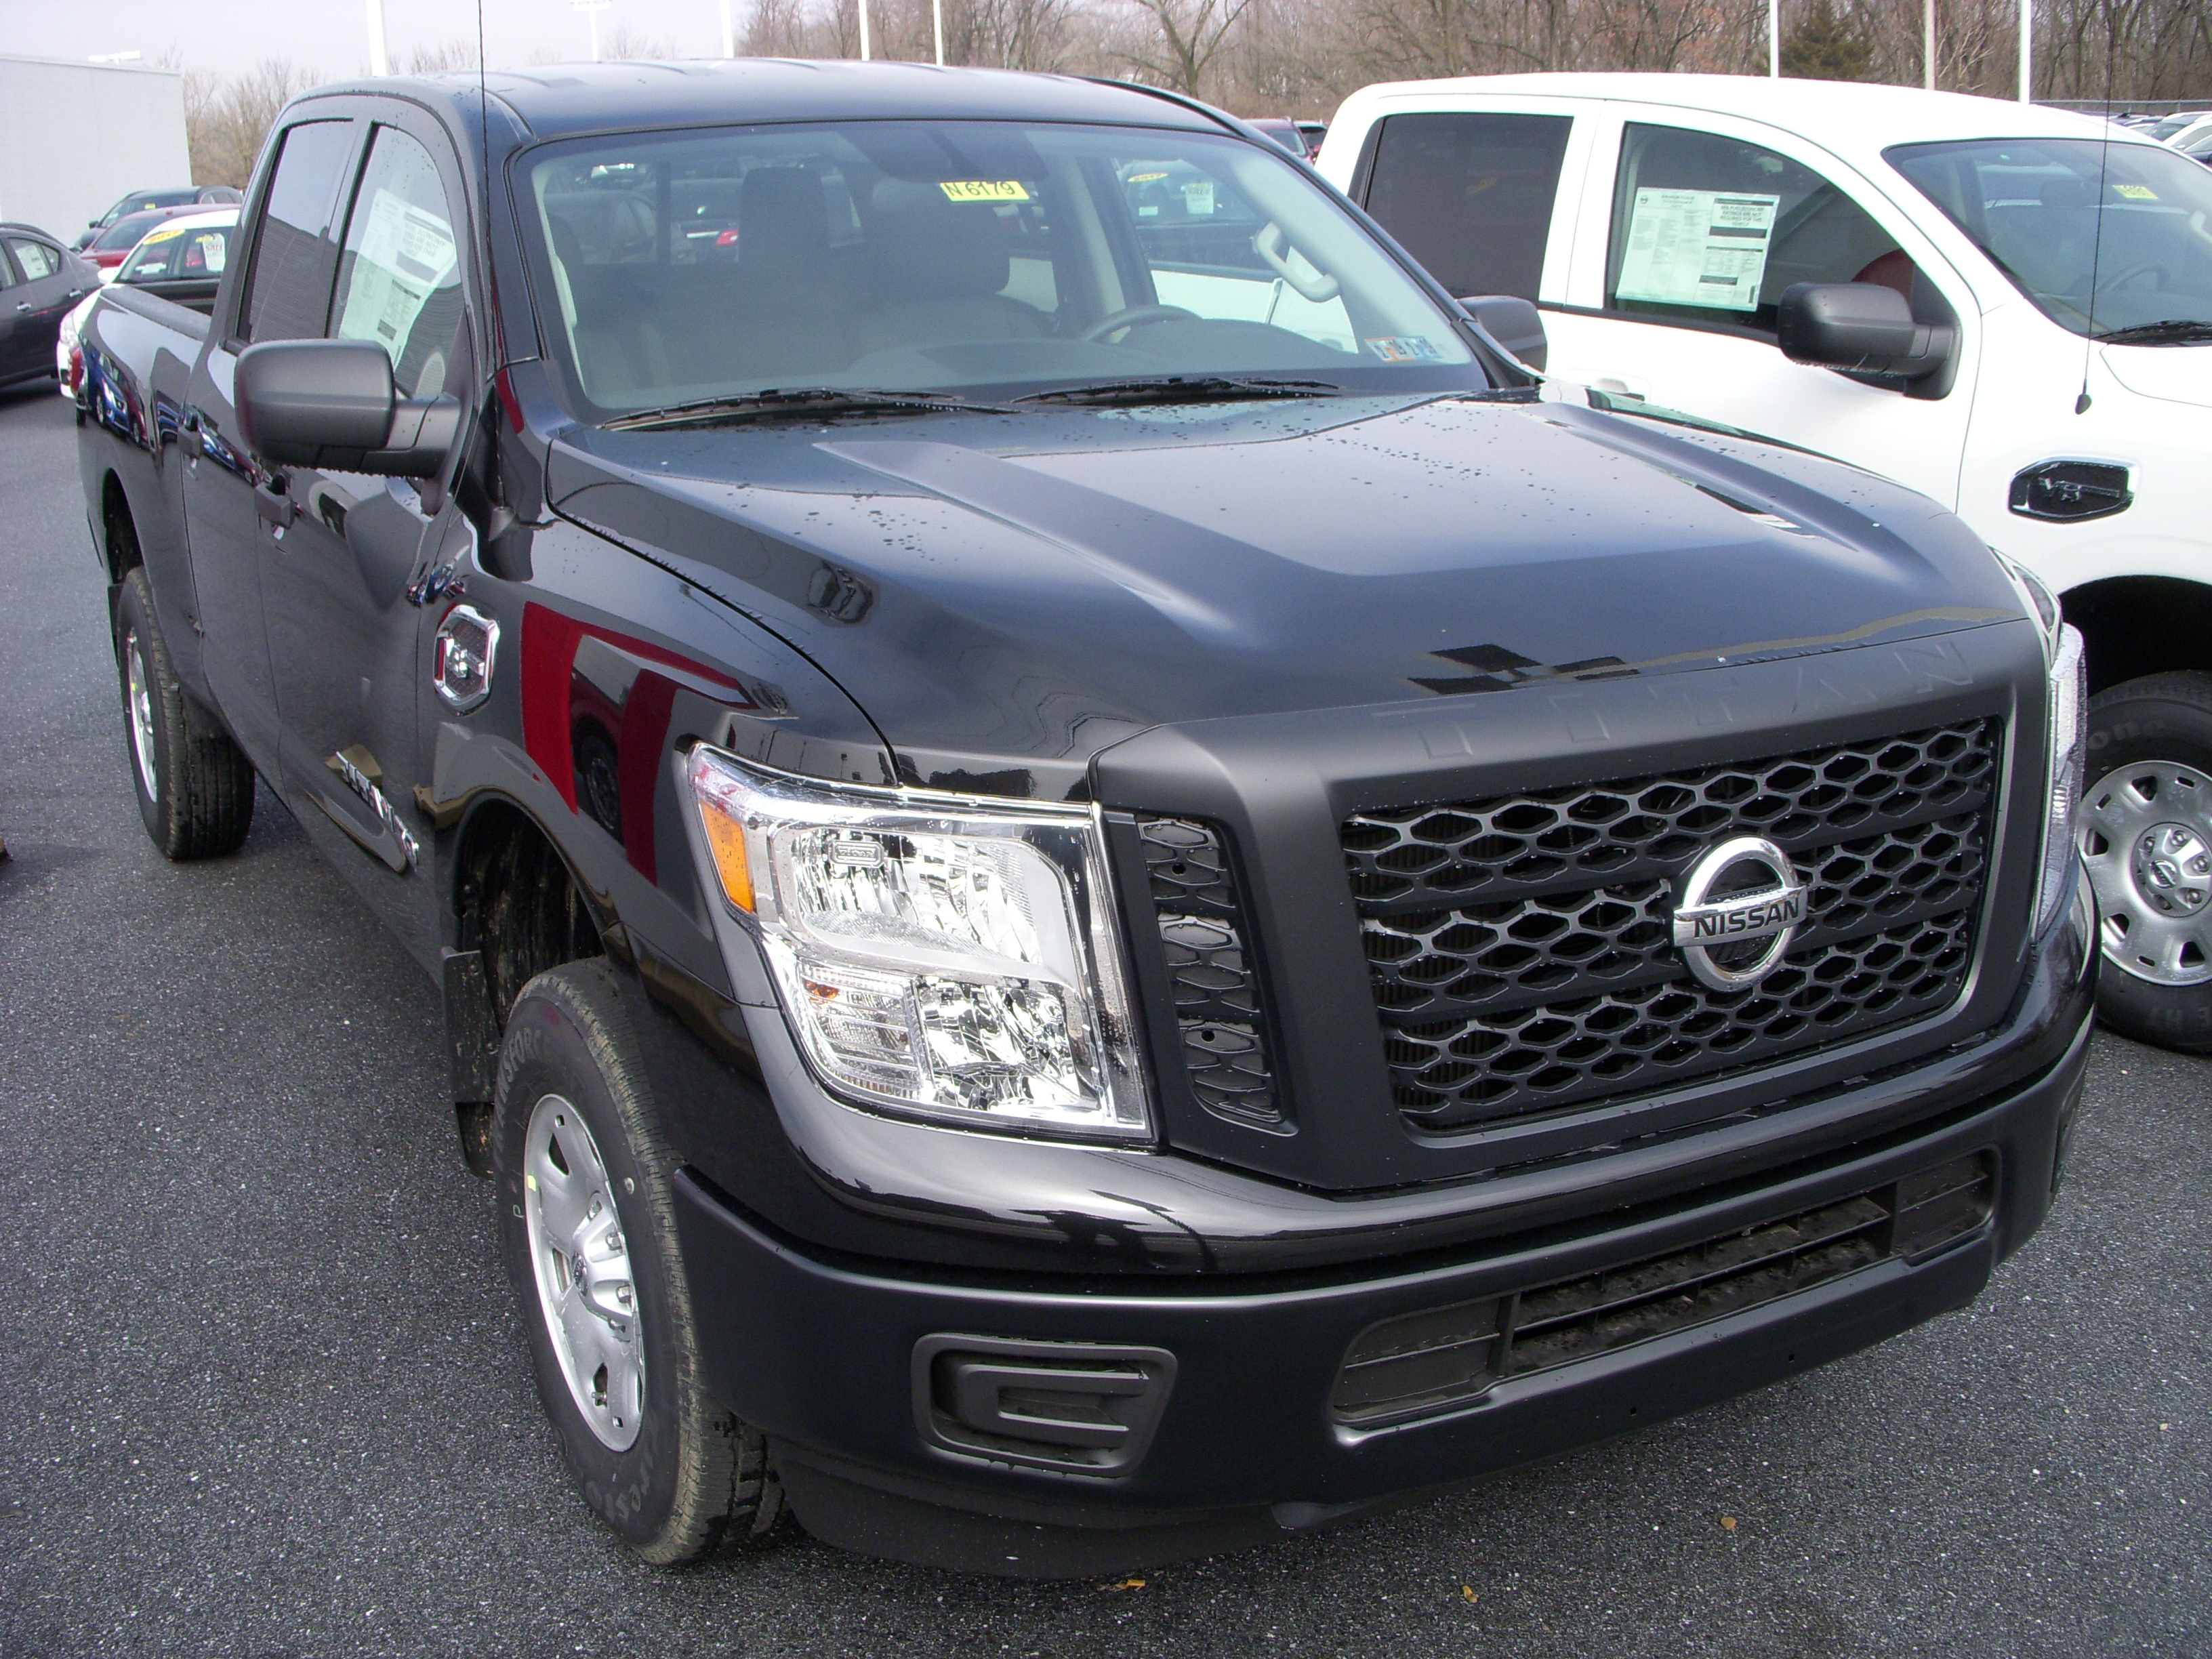 new 2018 nissan titan xd s in lebanon pa maguire 39 s nissan. Black Bedroom Furniture Sets. Home Design Ideas